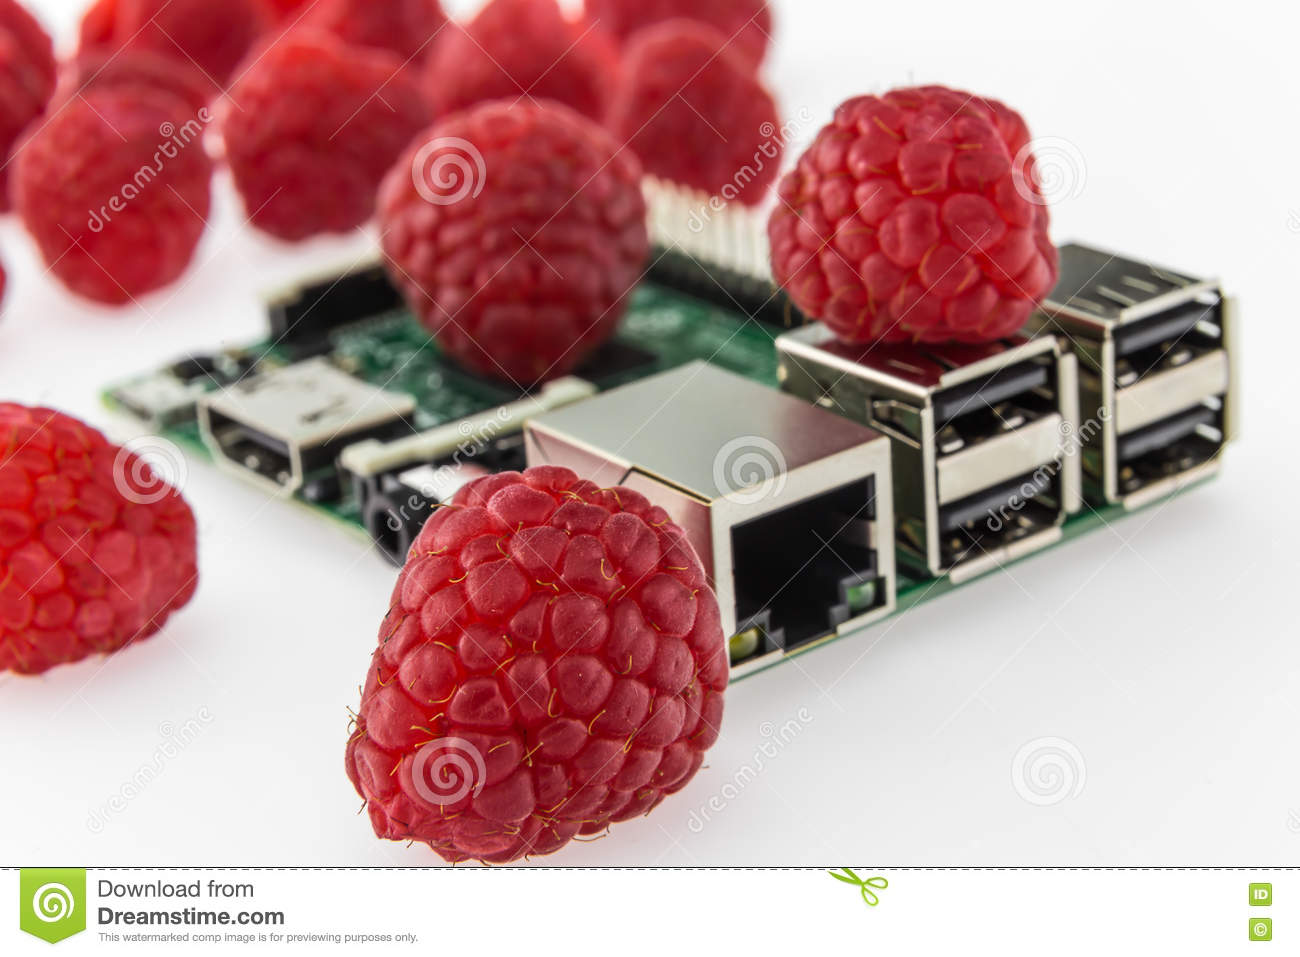 Many Raspberries And Circuit Board With Rj45 Hdmi Usb Conne Connector Connectors